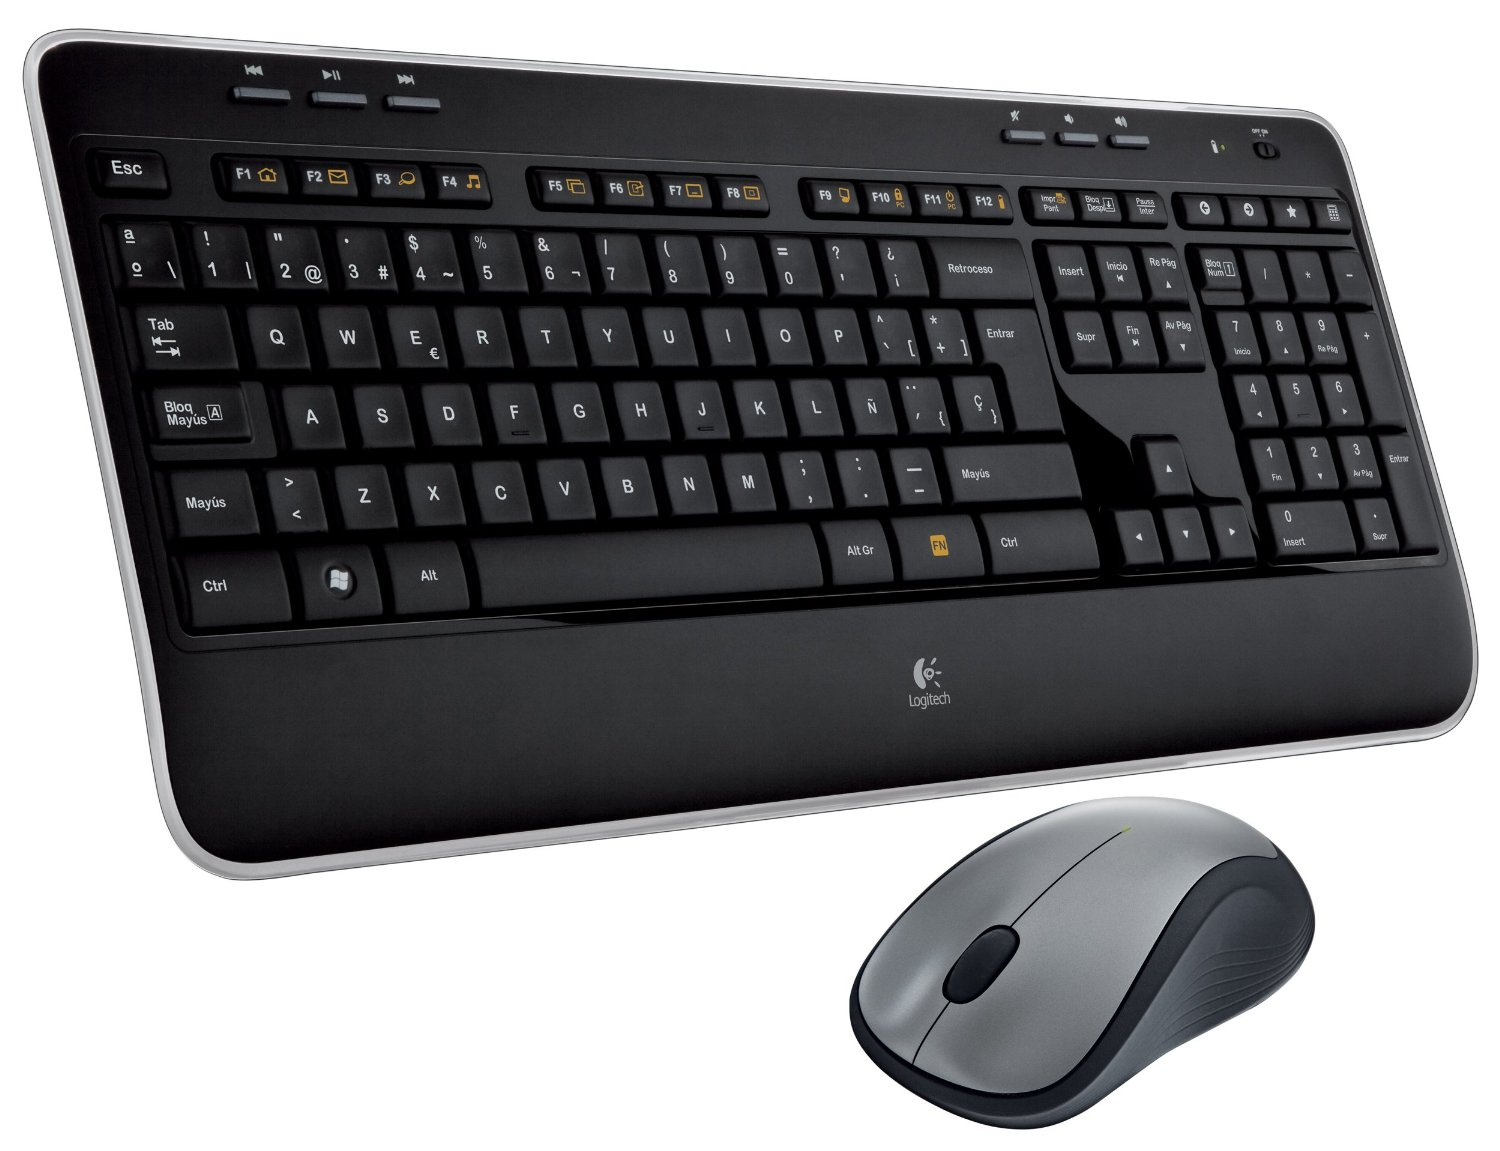 Logitech Wireless Combo MK520 - Bildquelle: Amazon